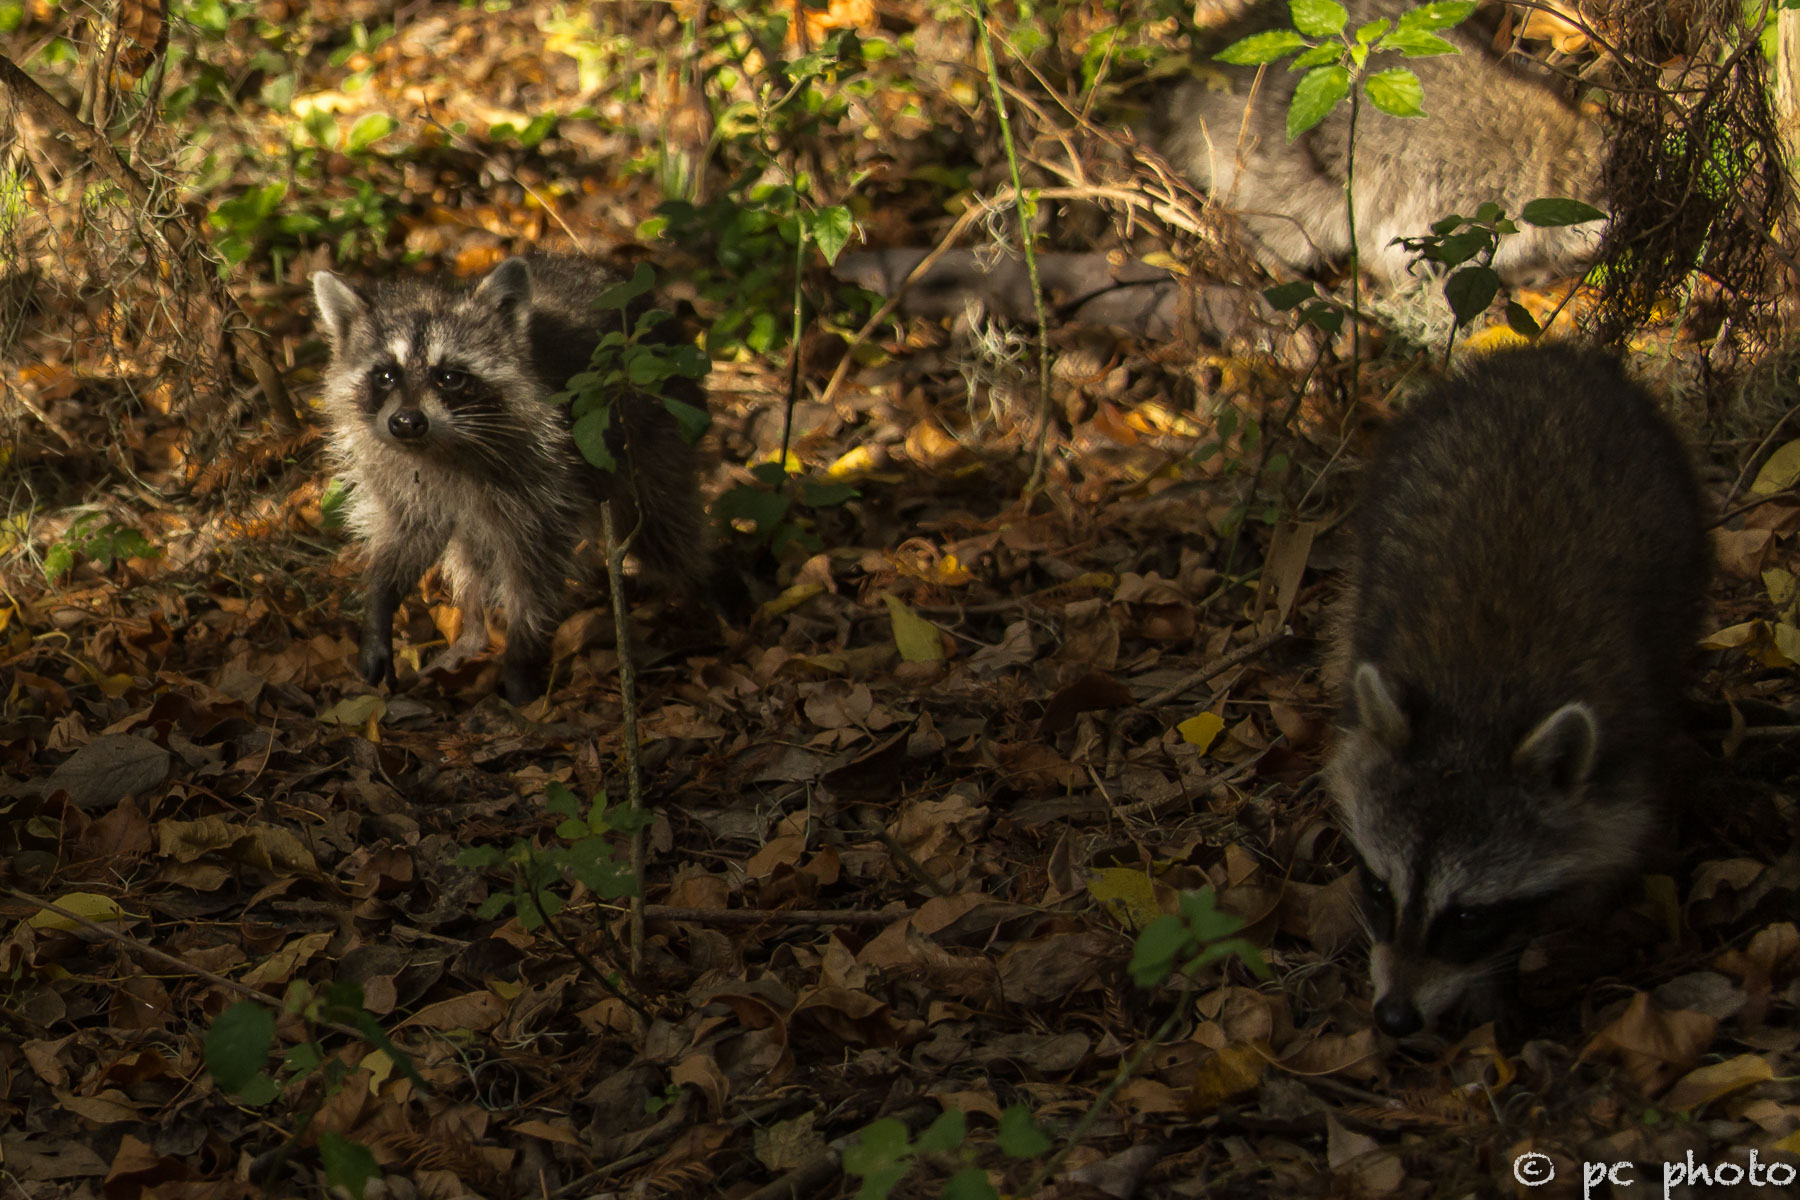 Forest Bandits – PC PHOTO